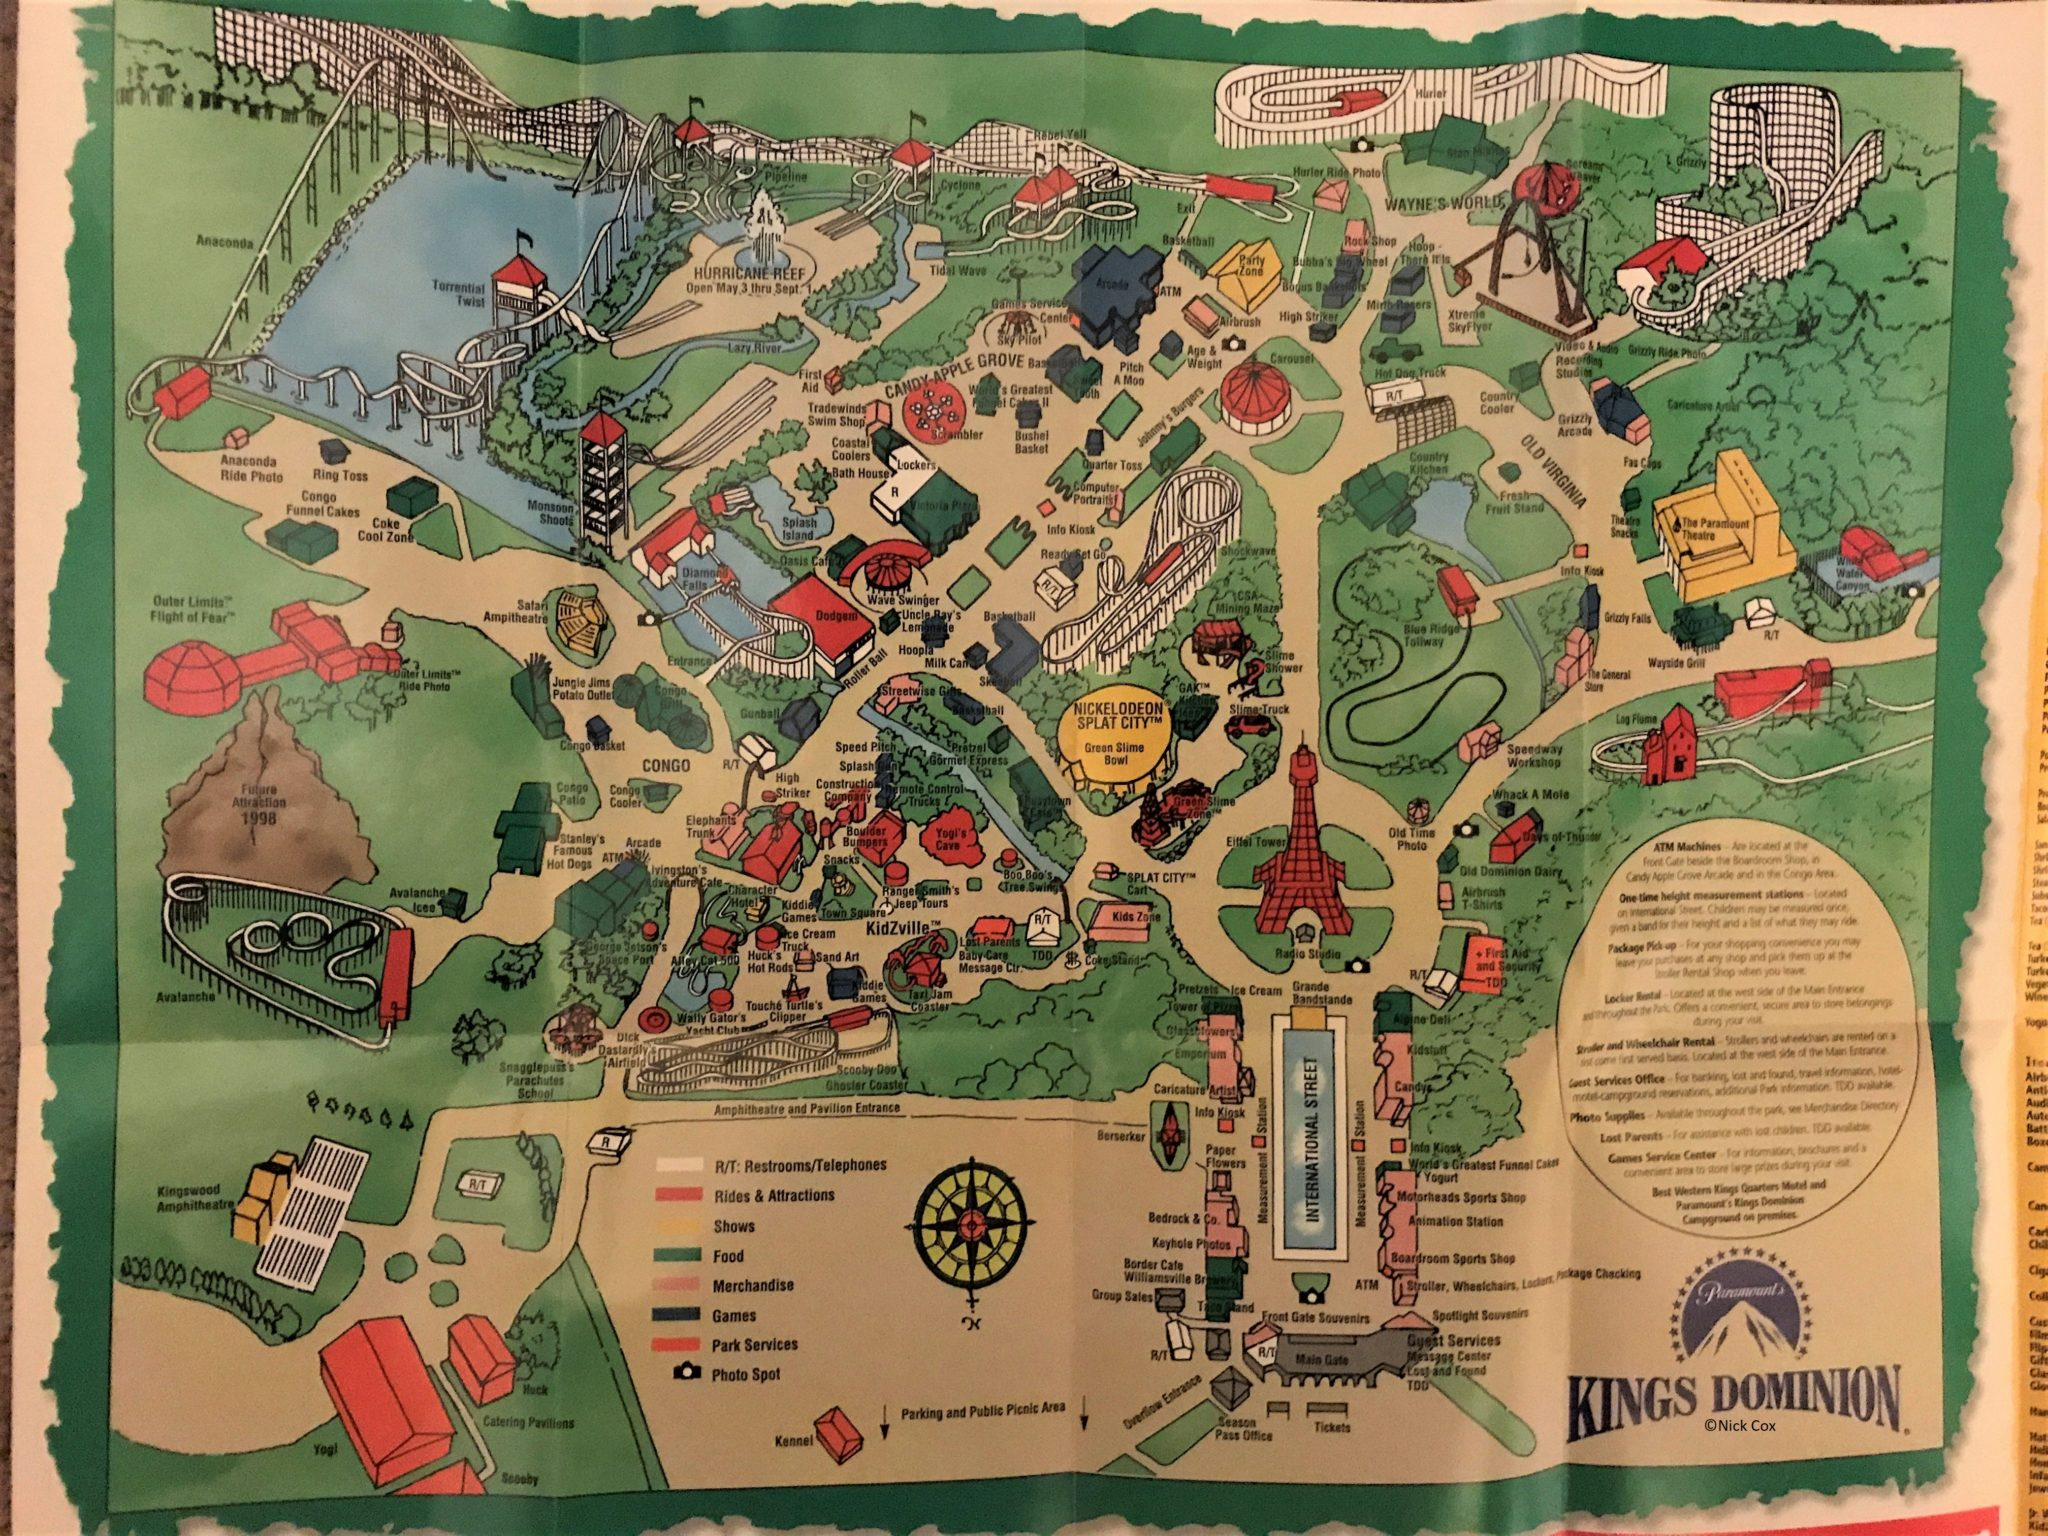 busch garden tampa map » Path Decorations Pictures | Full Path ...